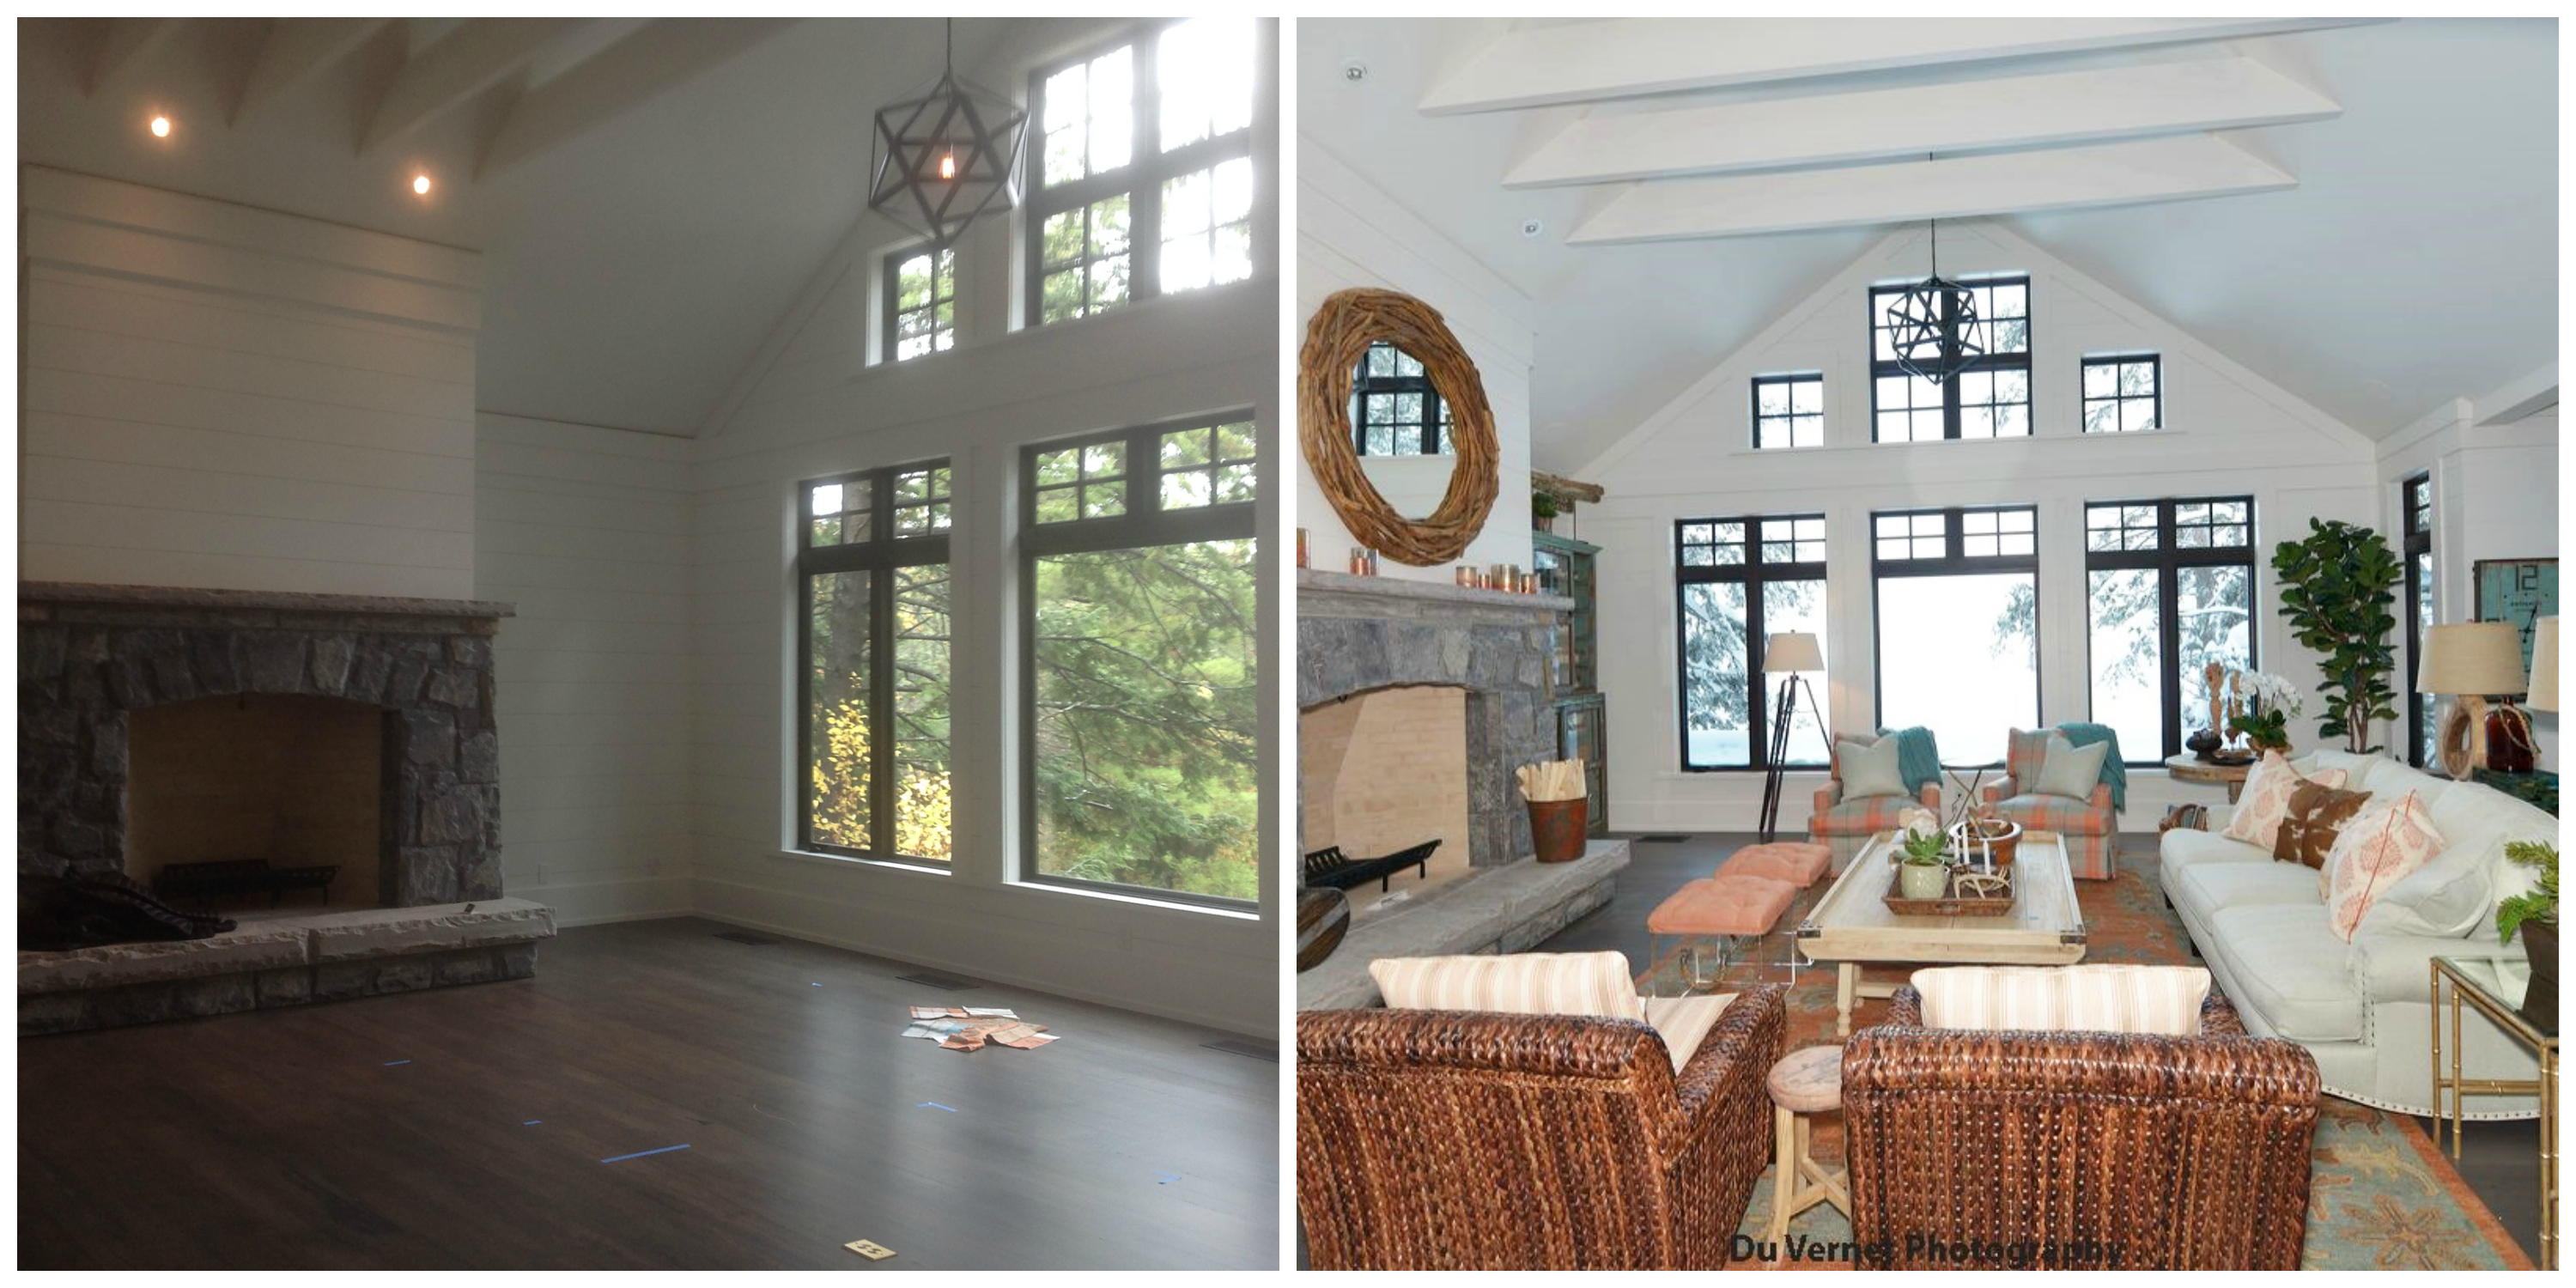 How To Make A Room With High Ceilings Cozy